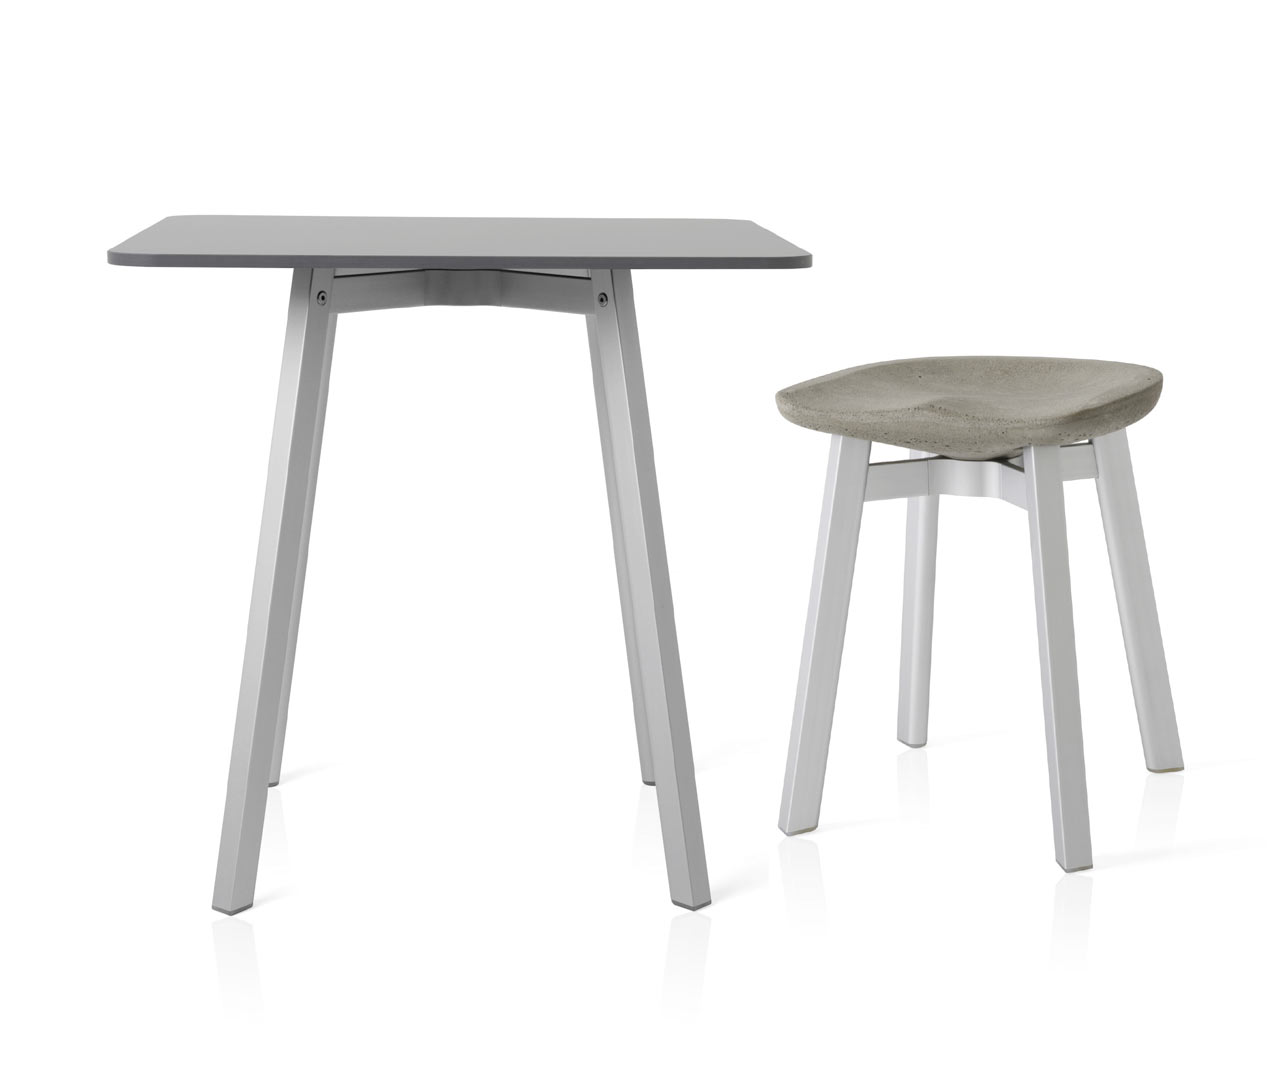 Emeco_SU-Collection-Nendo-Outdoor-Table-Stool-1